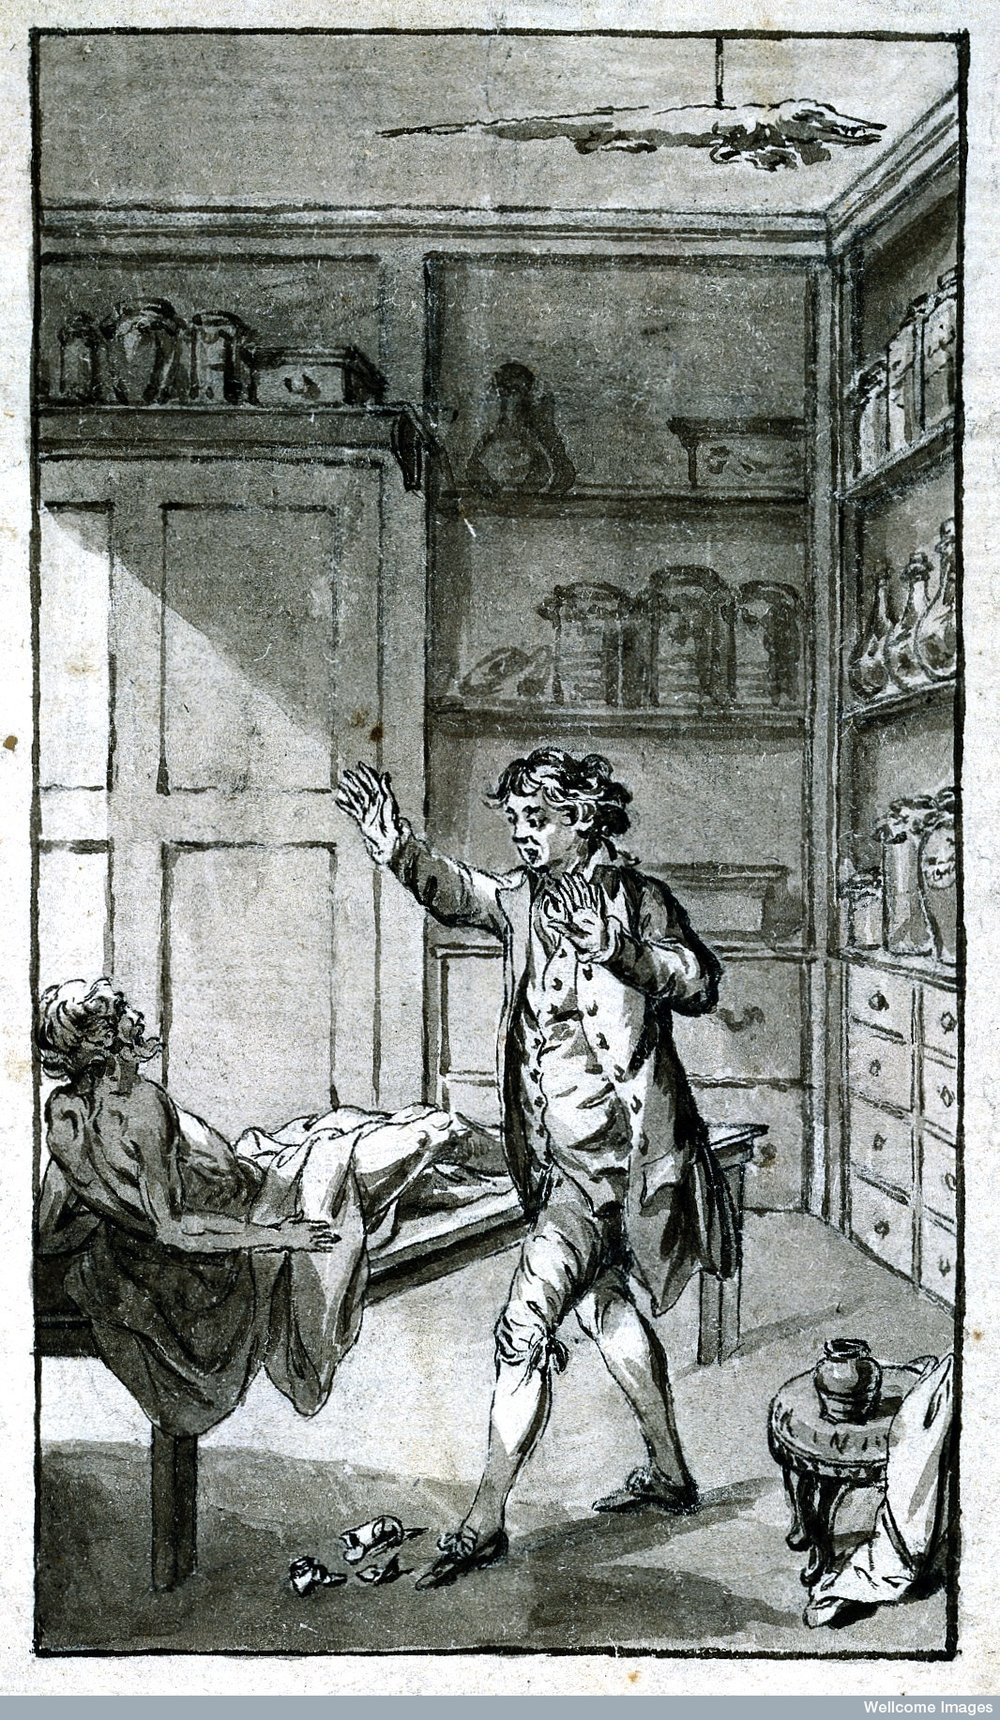 A man thought to be dead arising from a table in a laboratory and frightening the proprietor. c18th.  Wellcome Images L0022244